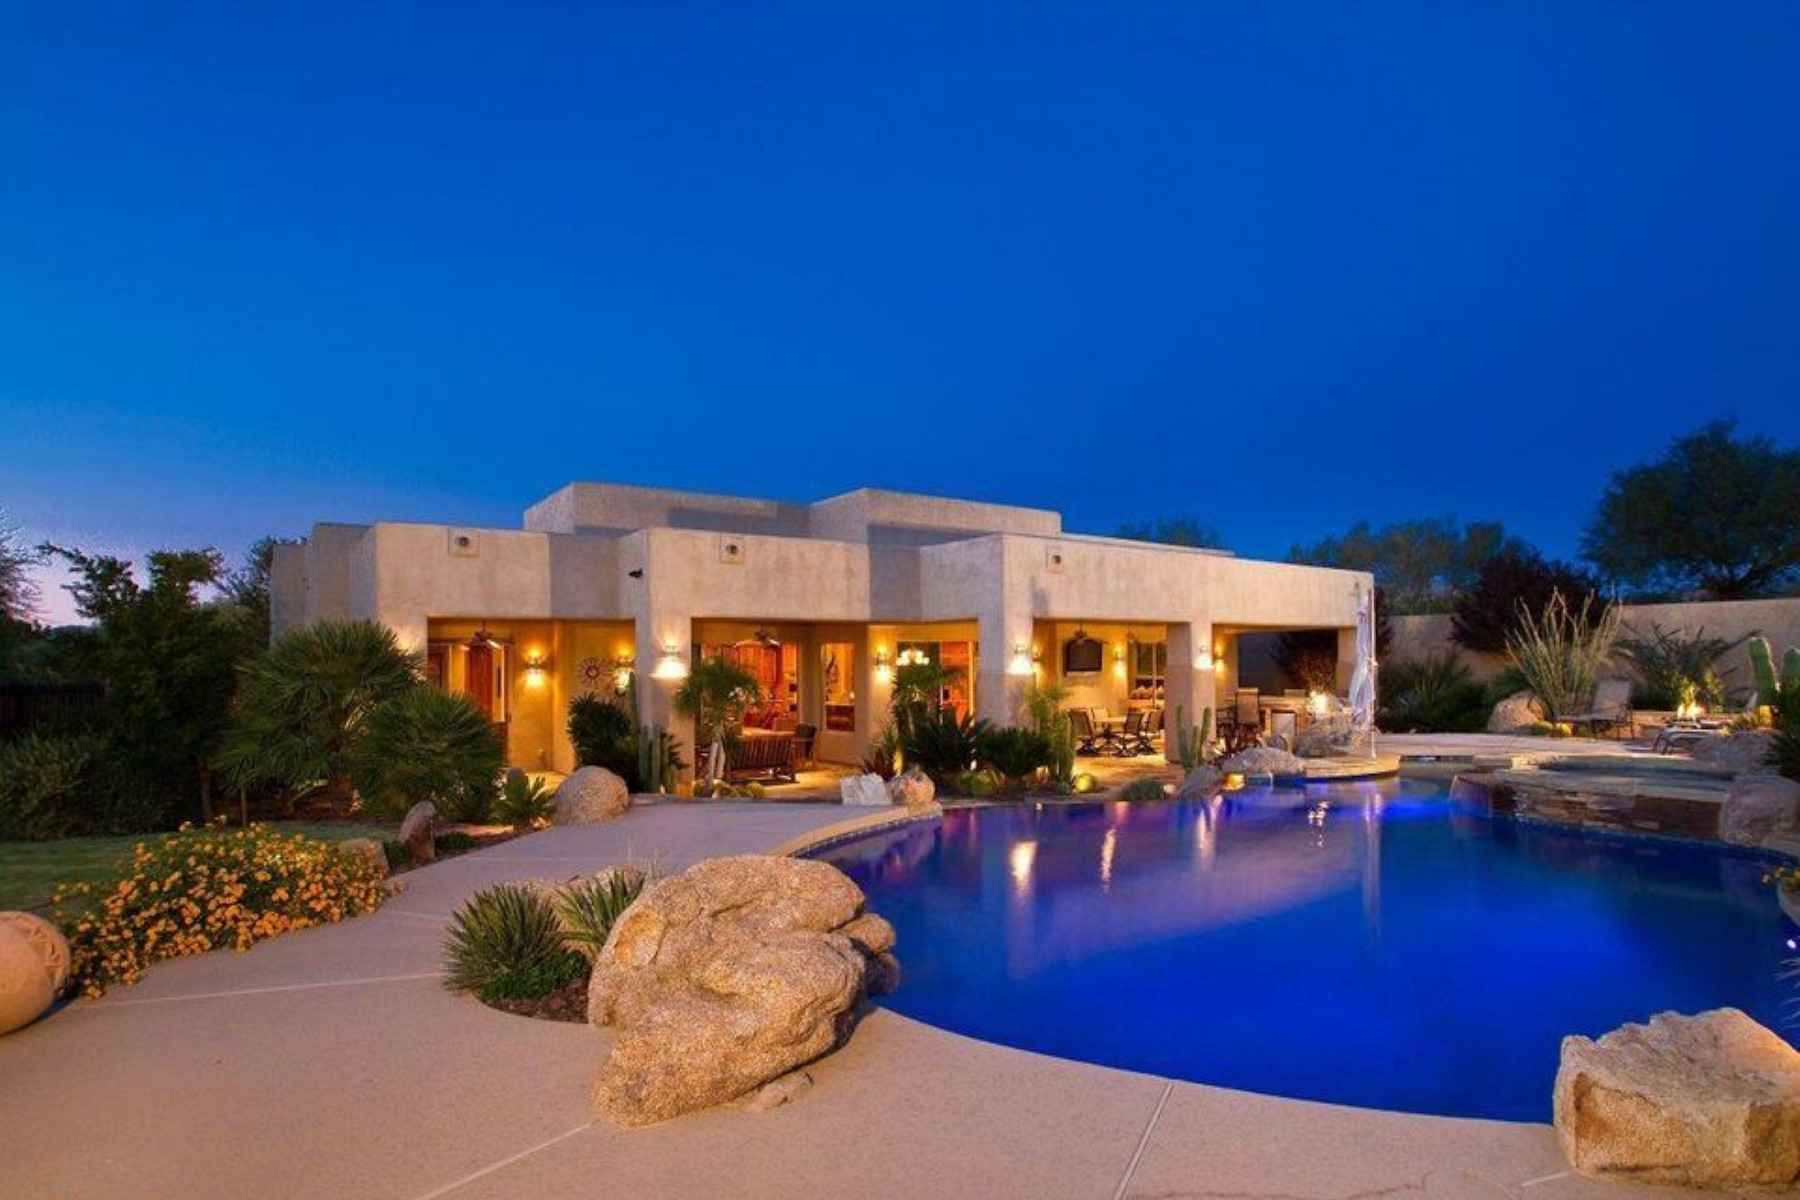 3115 SqFt House In Dynamite Foothills